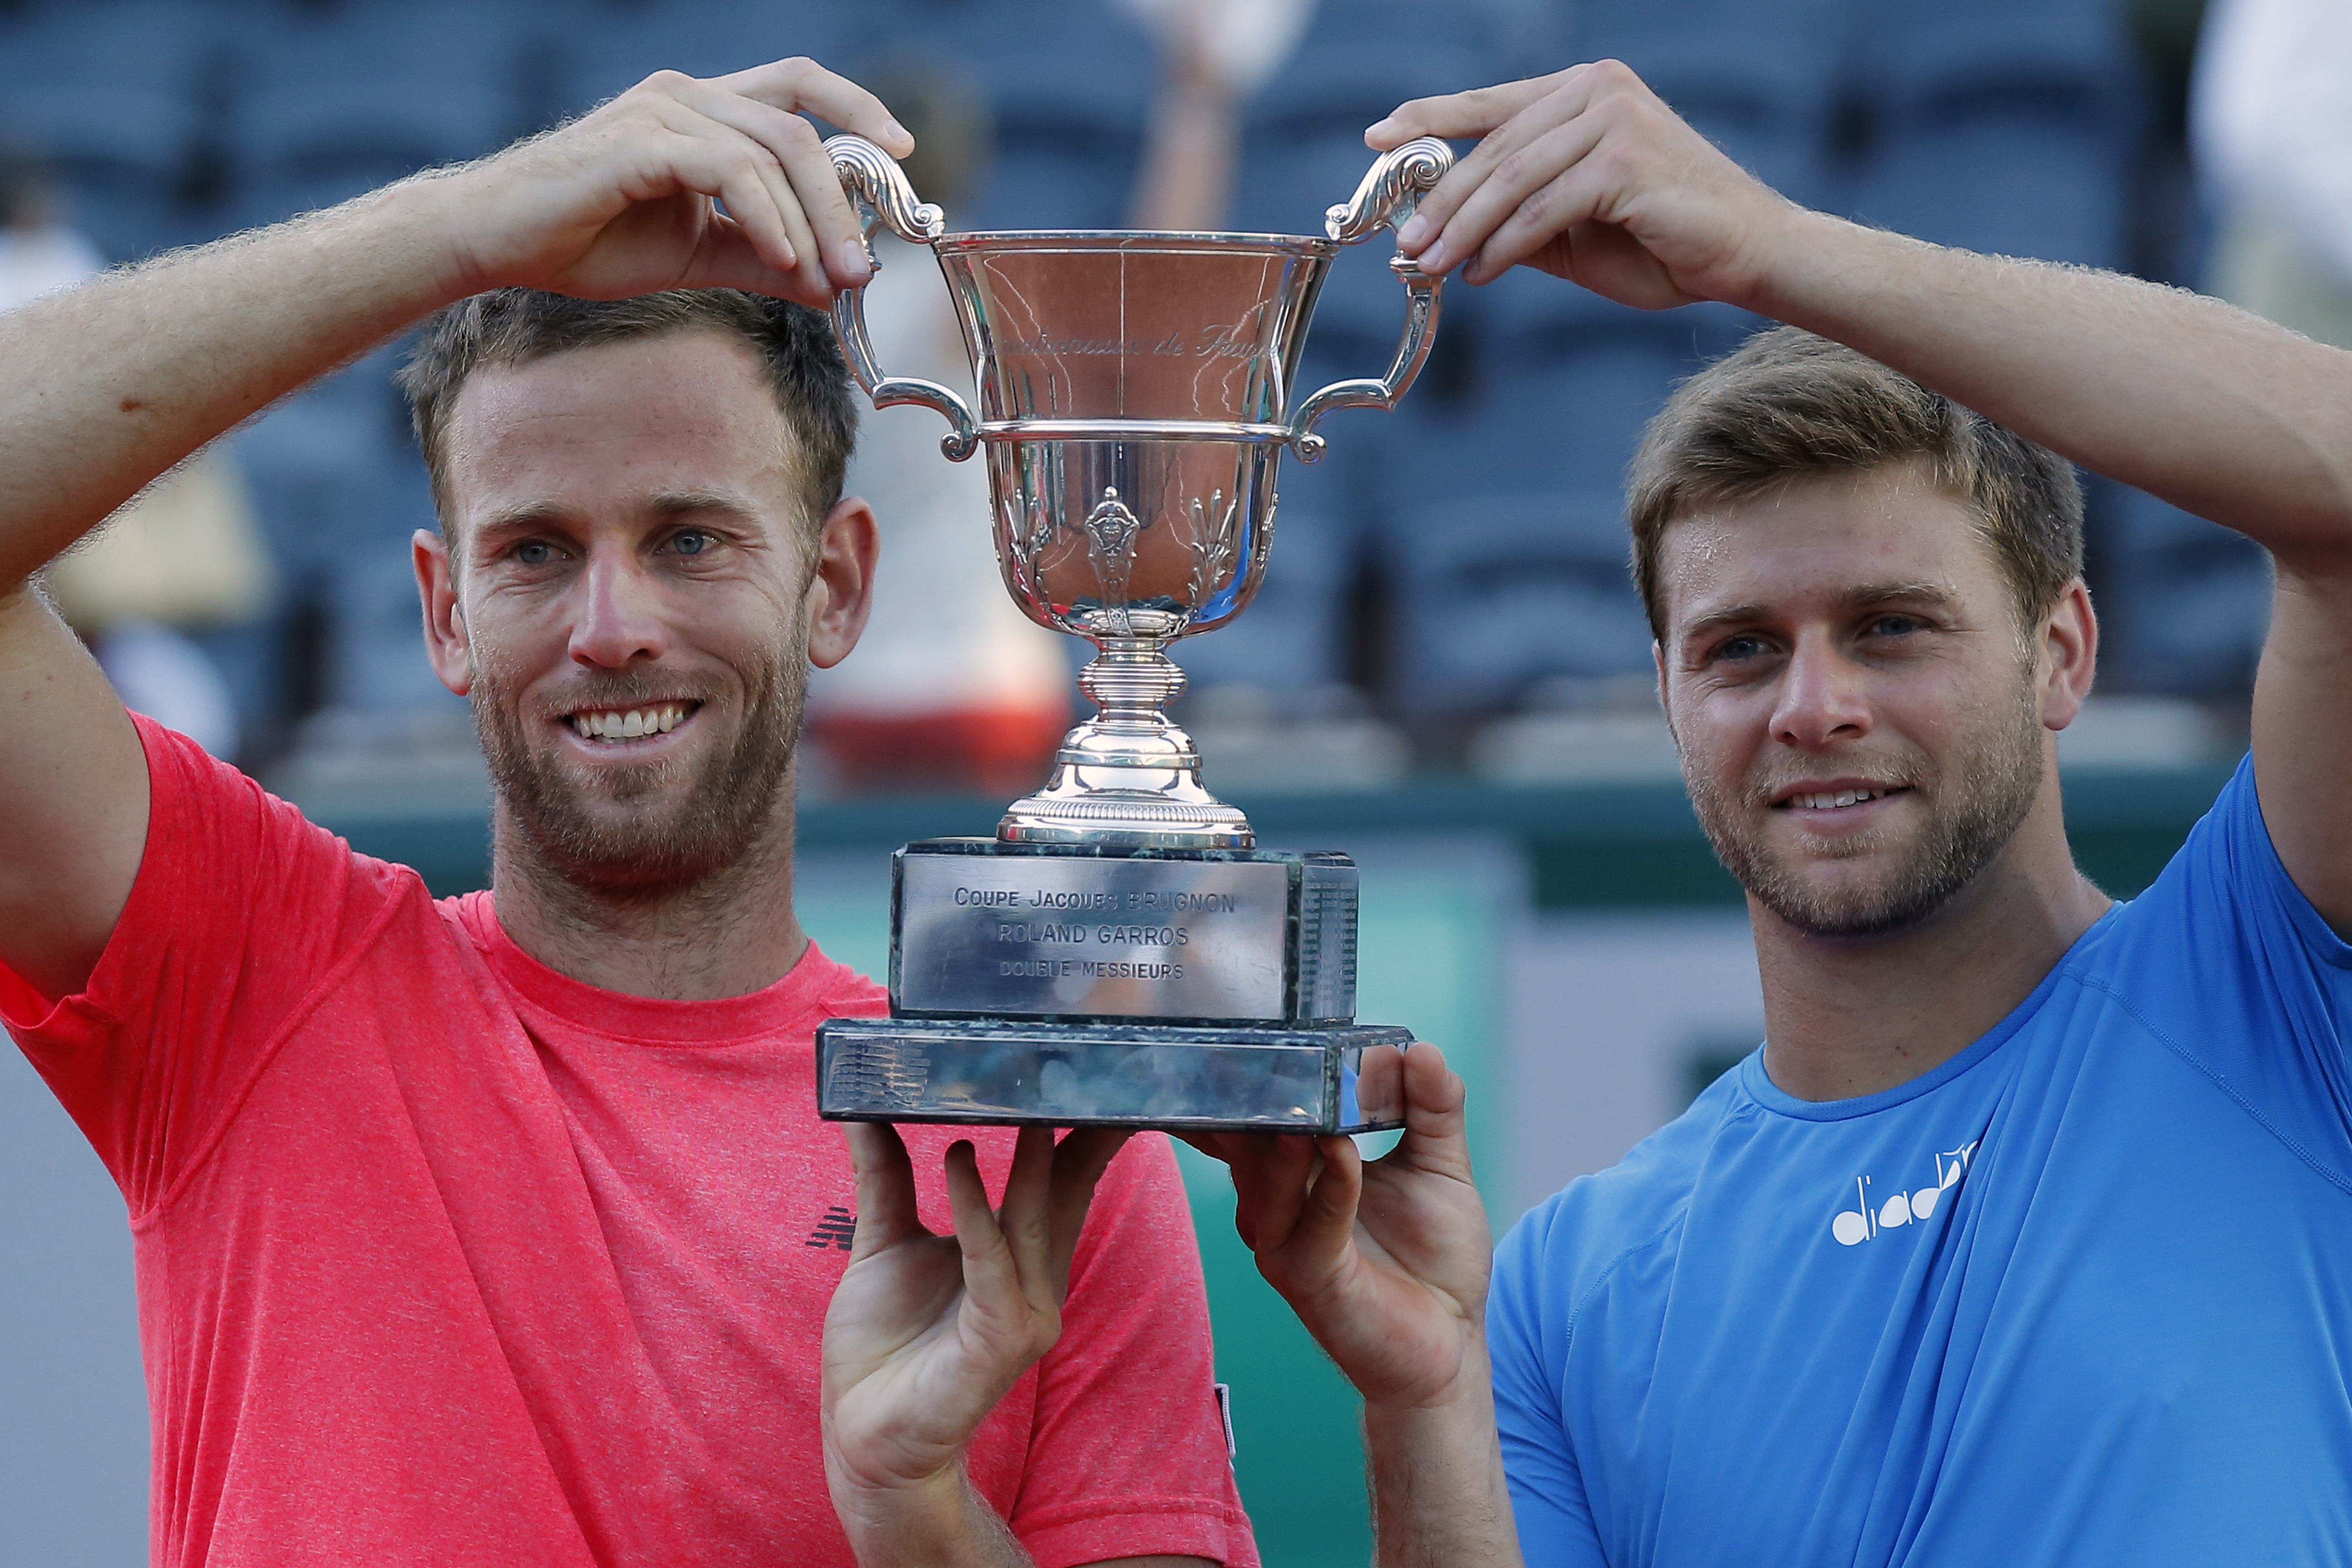 Ryan Harrison of the U.S. and Michael Venus of New Zealand, left, hold the trophy after winning the men's doubles final match of the French Open tennis tournament against Santiago Gonzalez of Mexico and Donald Young of the U.S. in three sets 7-6 (7-5), 6-